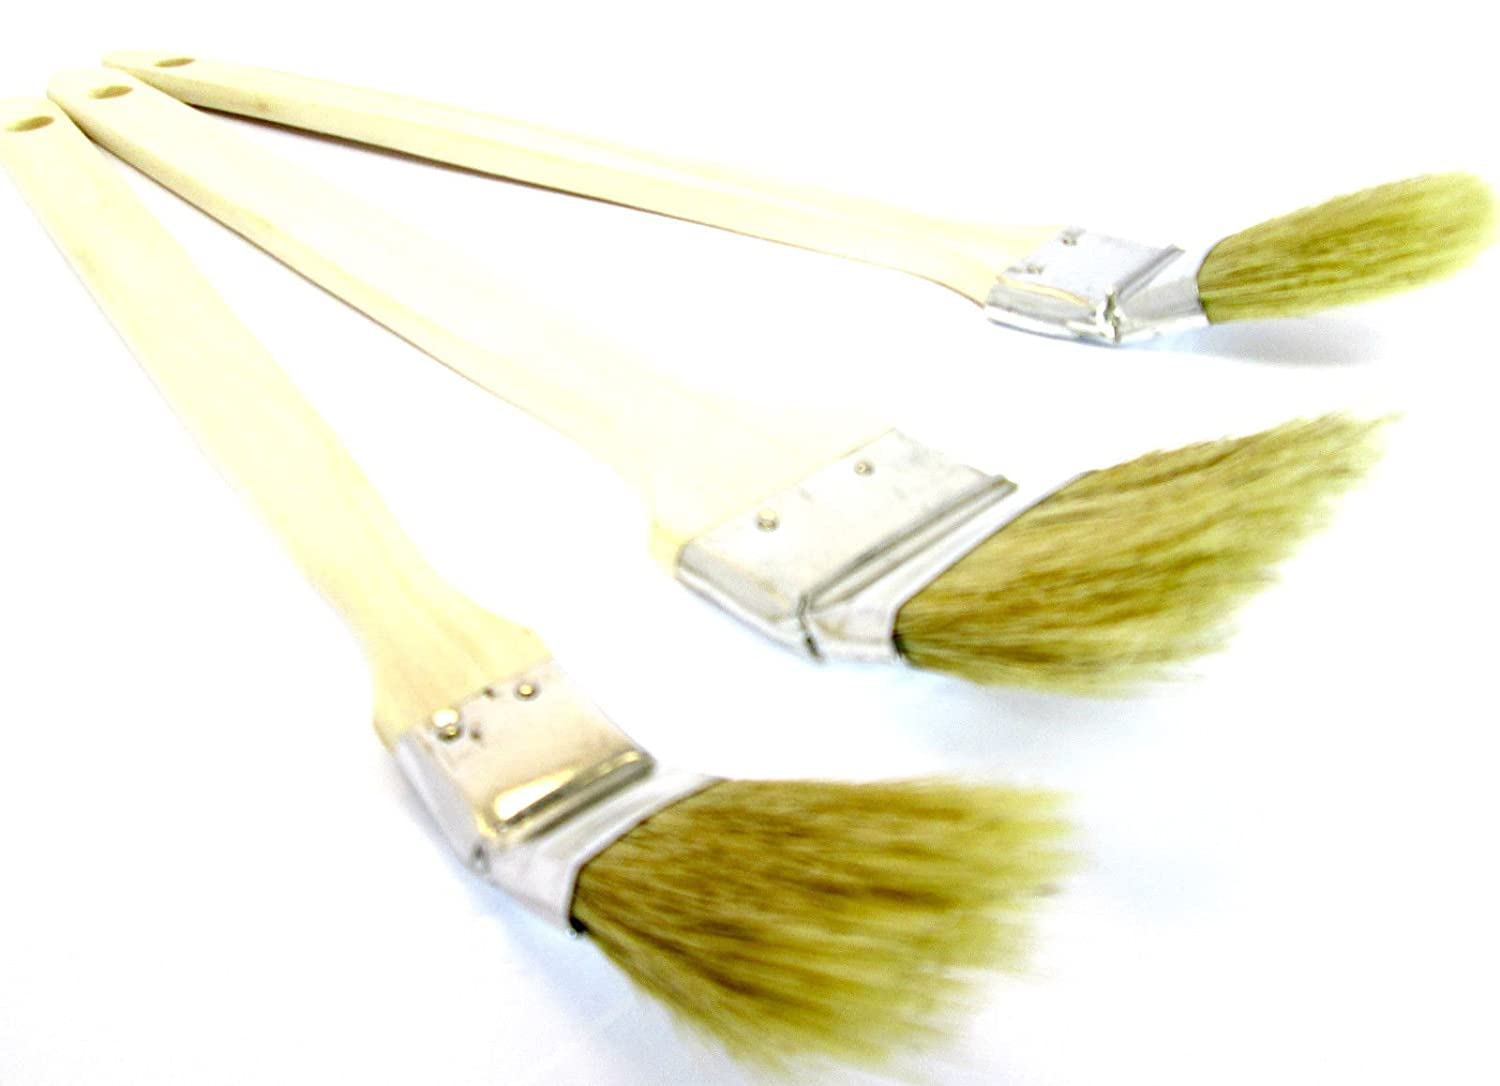 5 Piece Paint Brush Set Brushes Painting Decorating DIY 1/'/' to 3/'/' Amtech S3905A